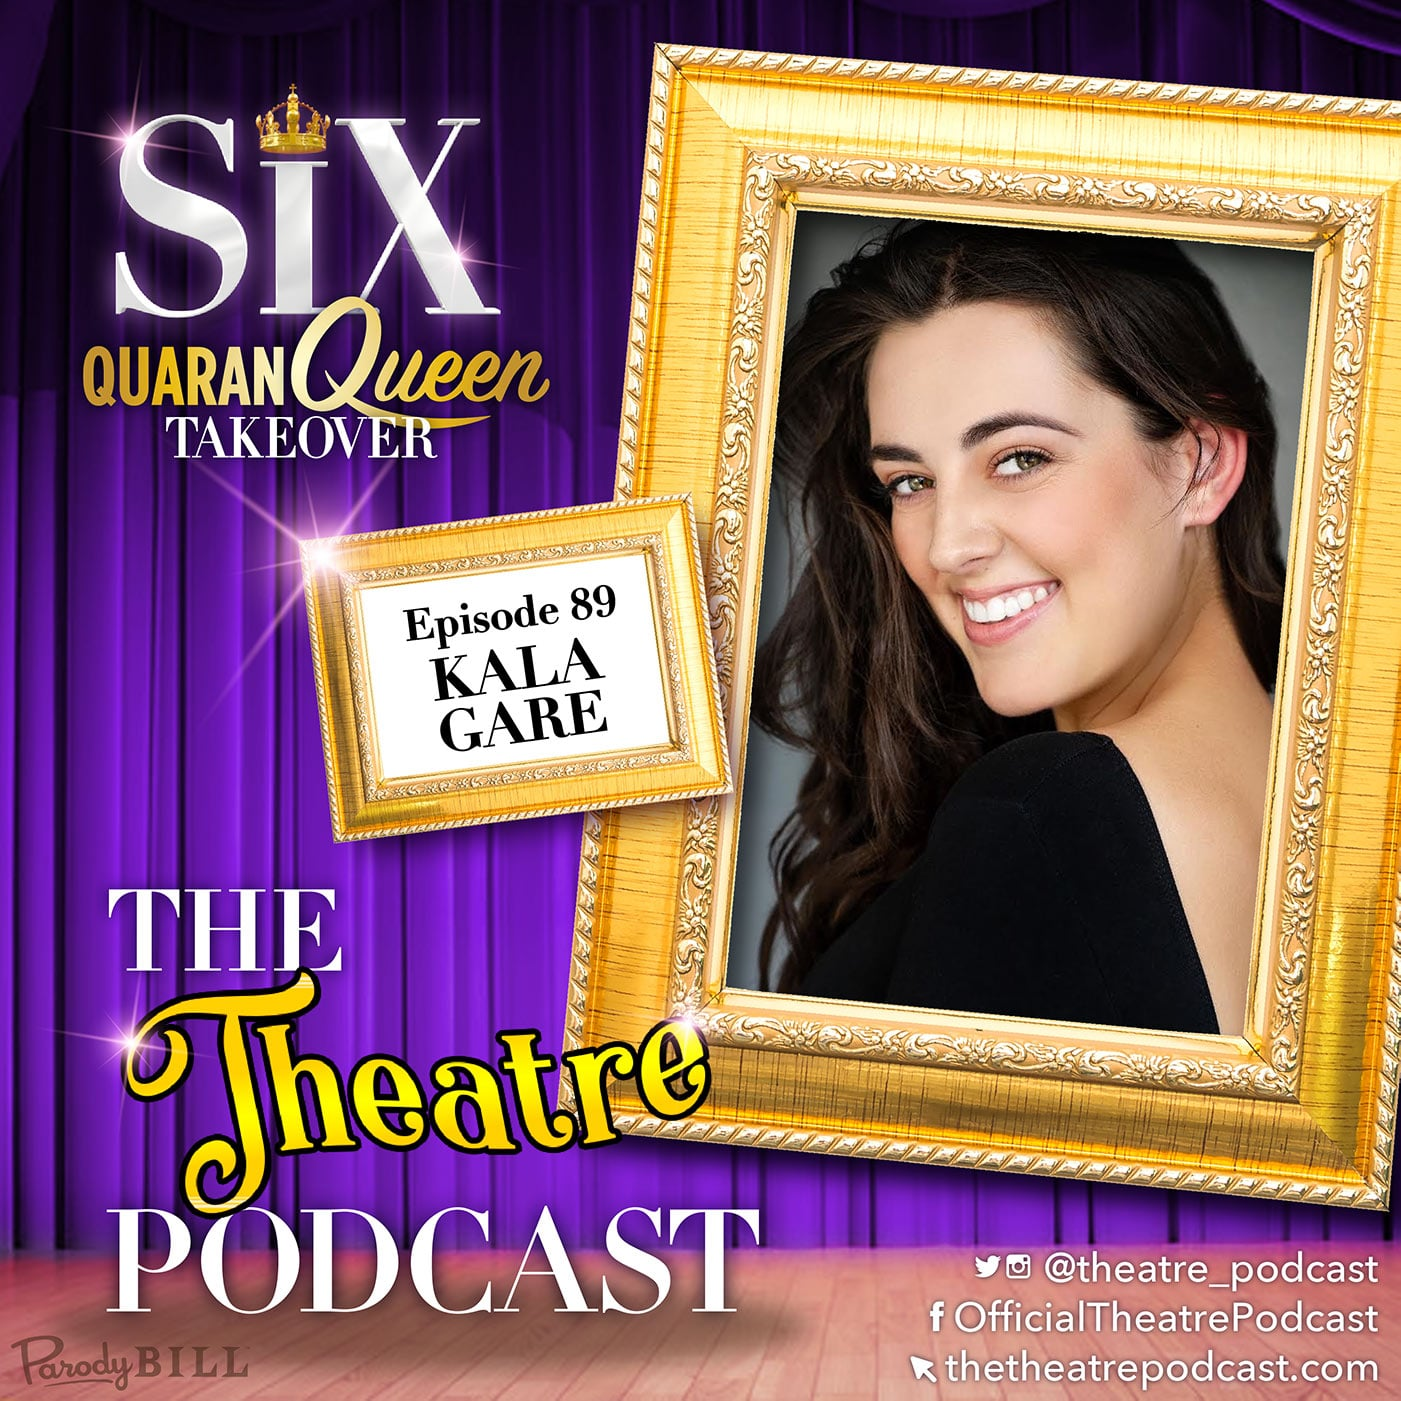 The Theatre Podcast with Alan Seales Ep89 - Kala Gare, Anne Boleyn in SIX the Musical (Australian cast)